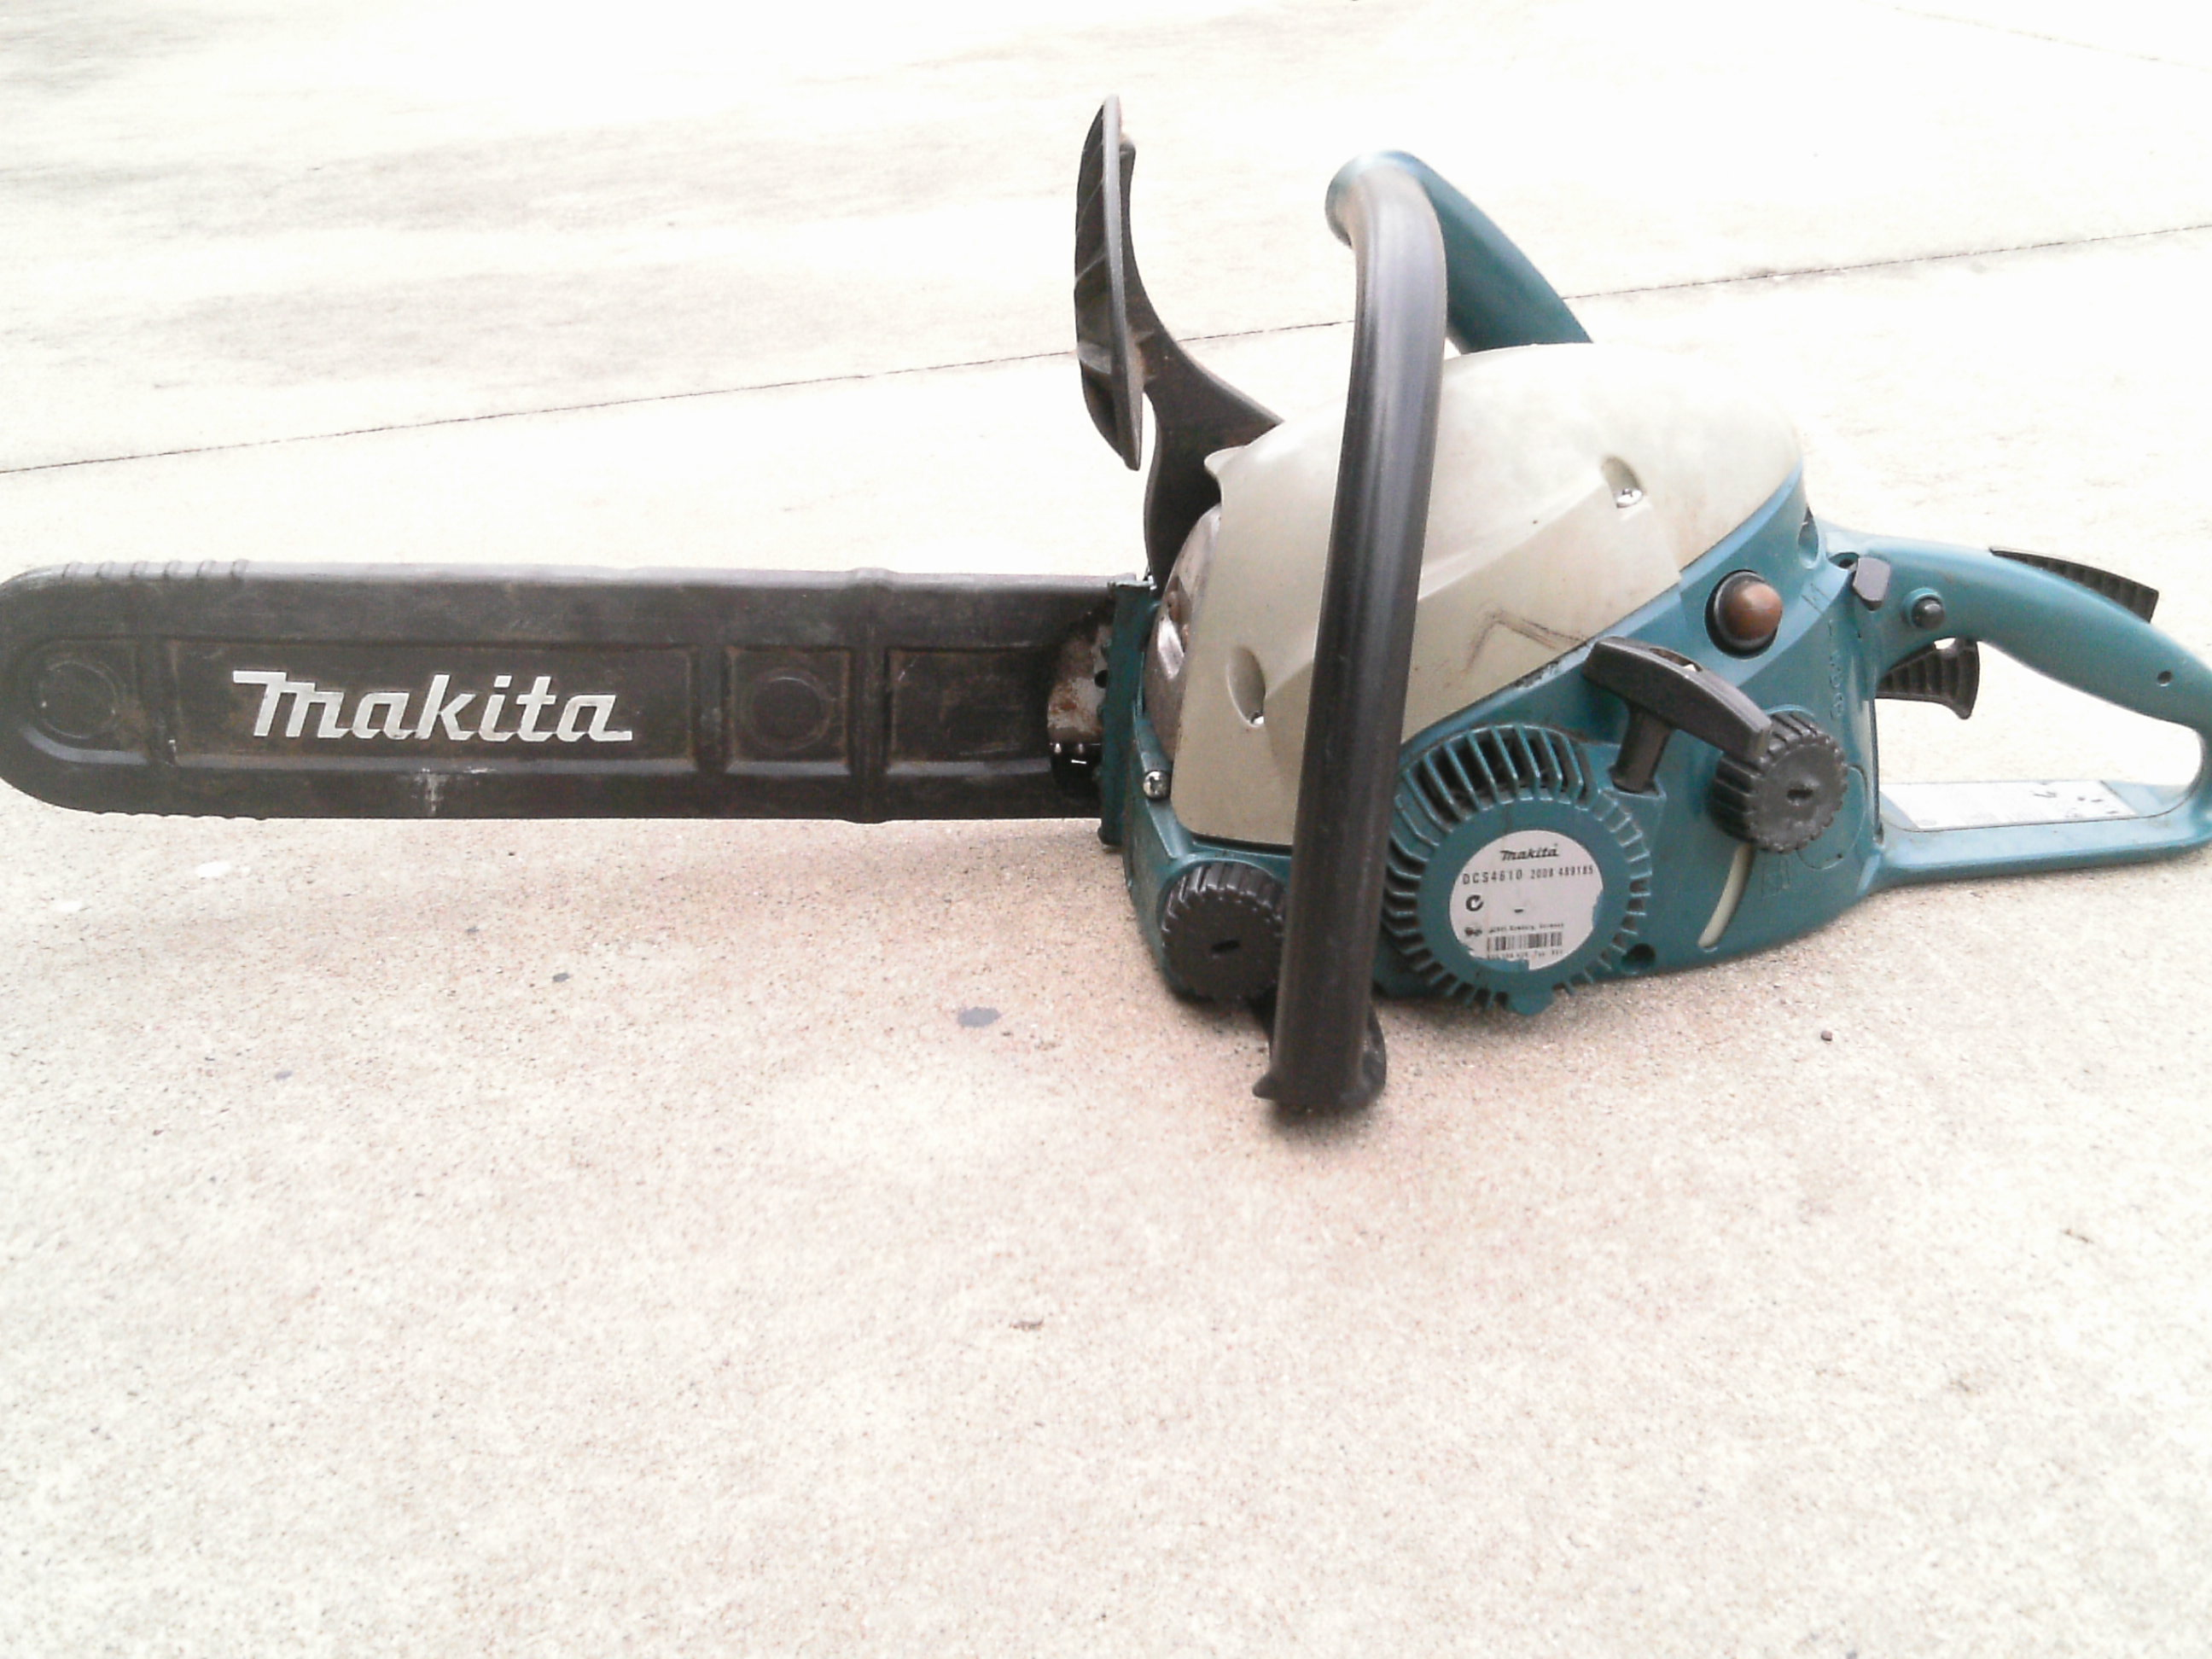 """16"""" Blade, hasn't been used much & just been serviced with a spare chain. $400.00 O.N.O."""